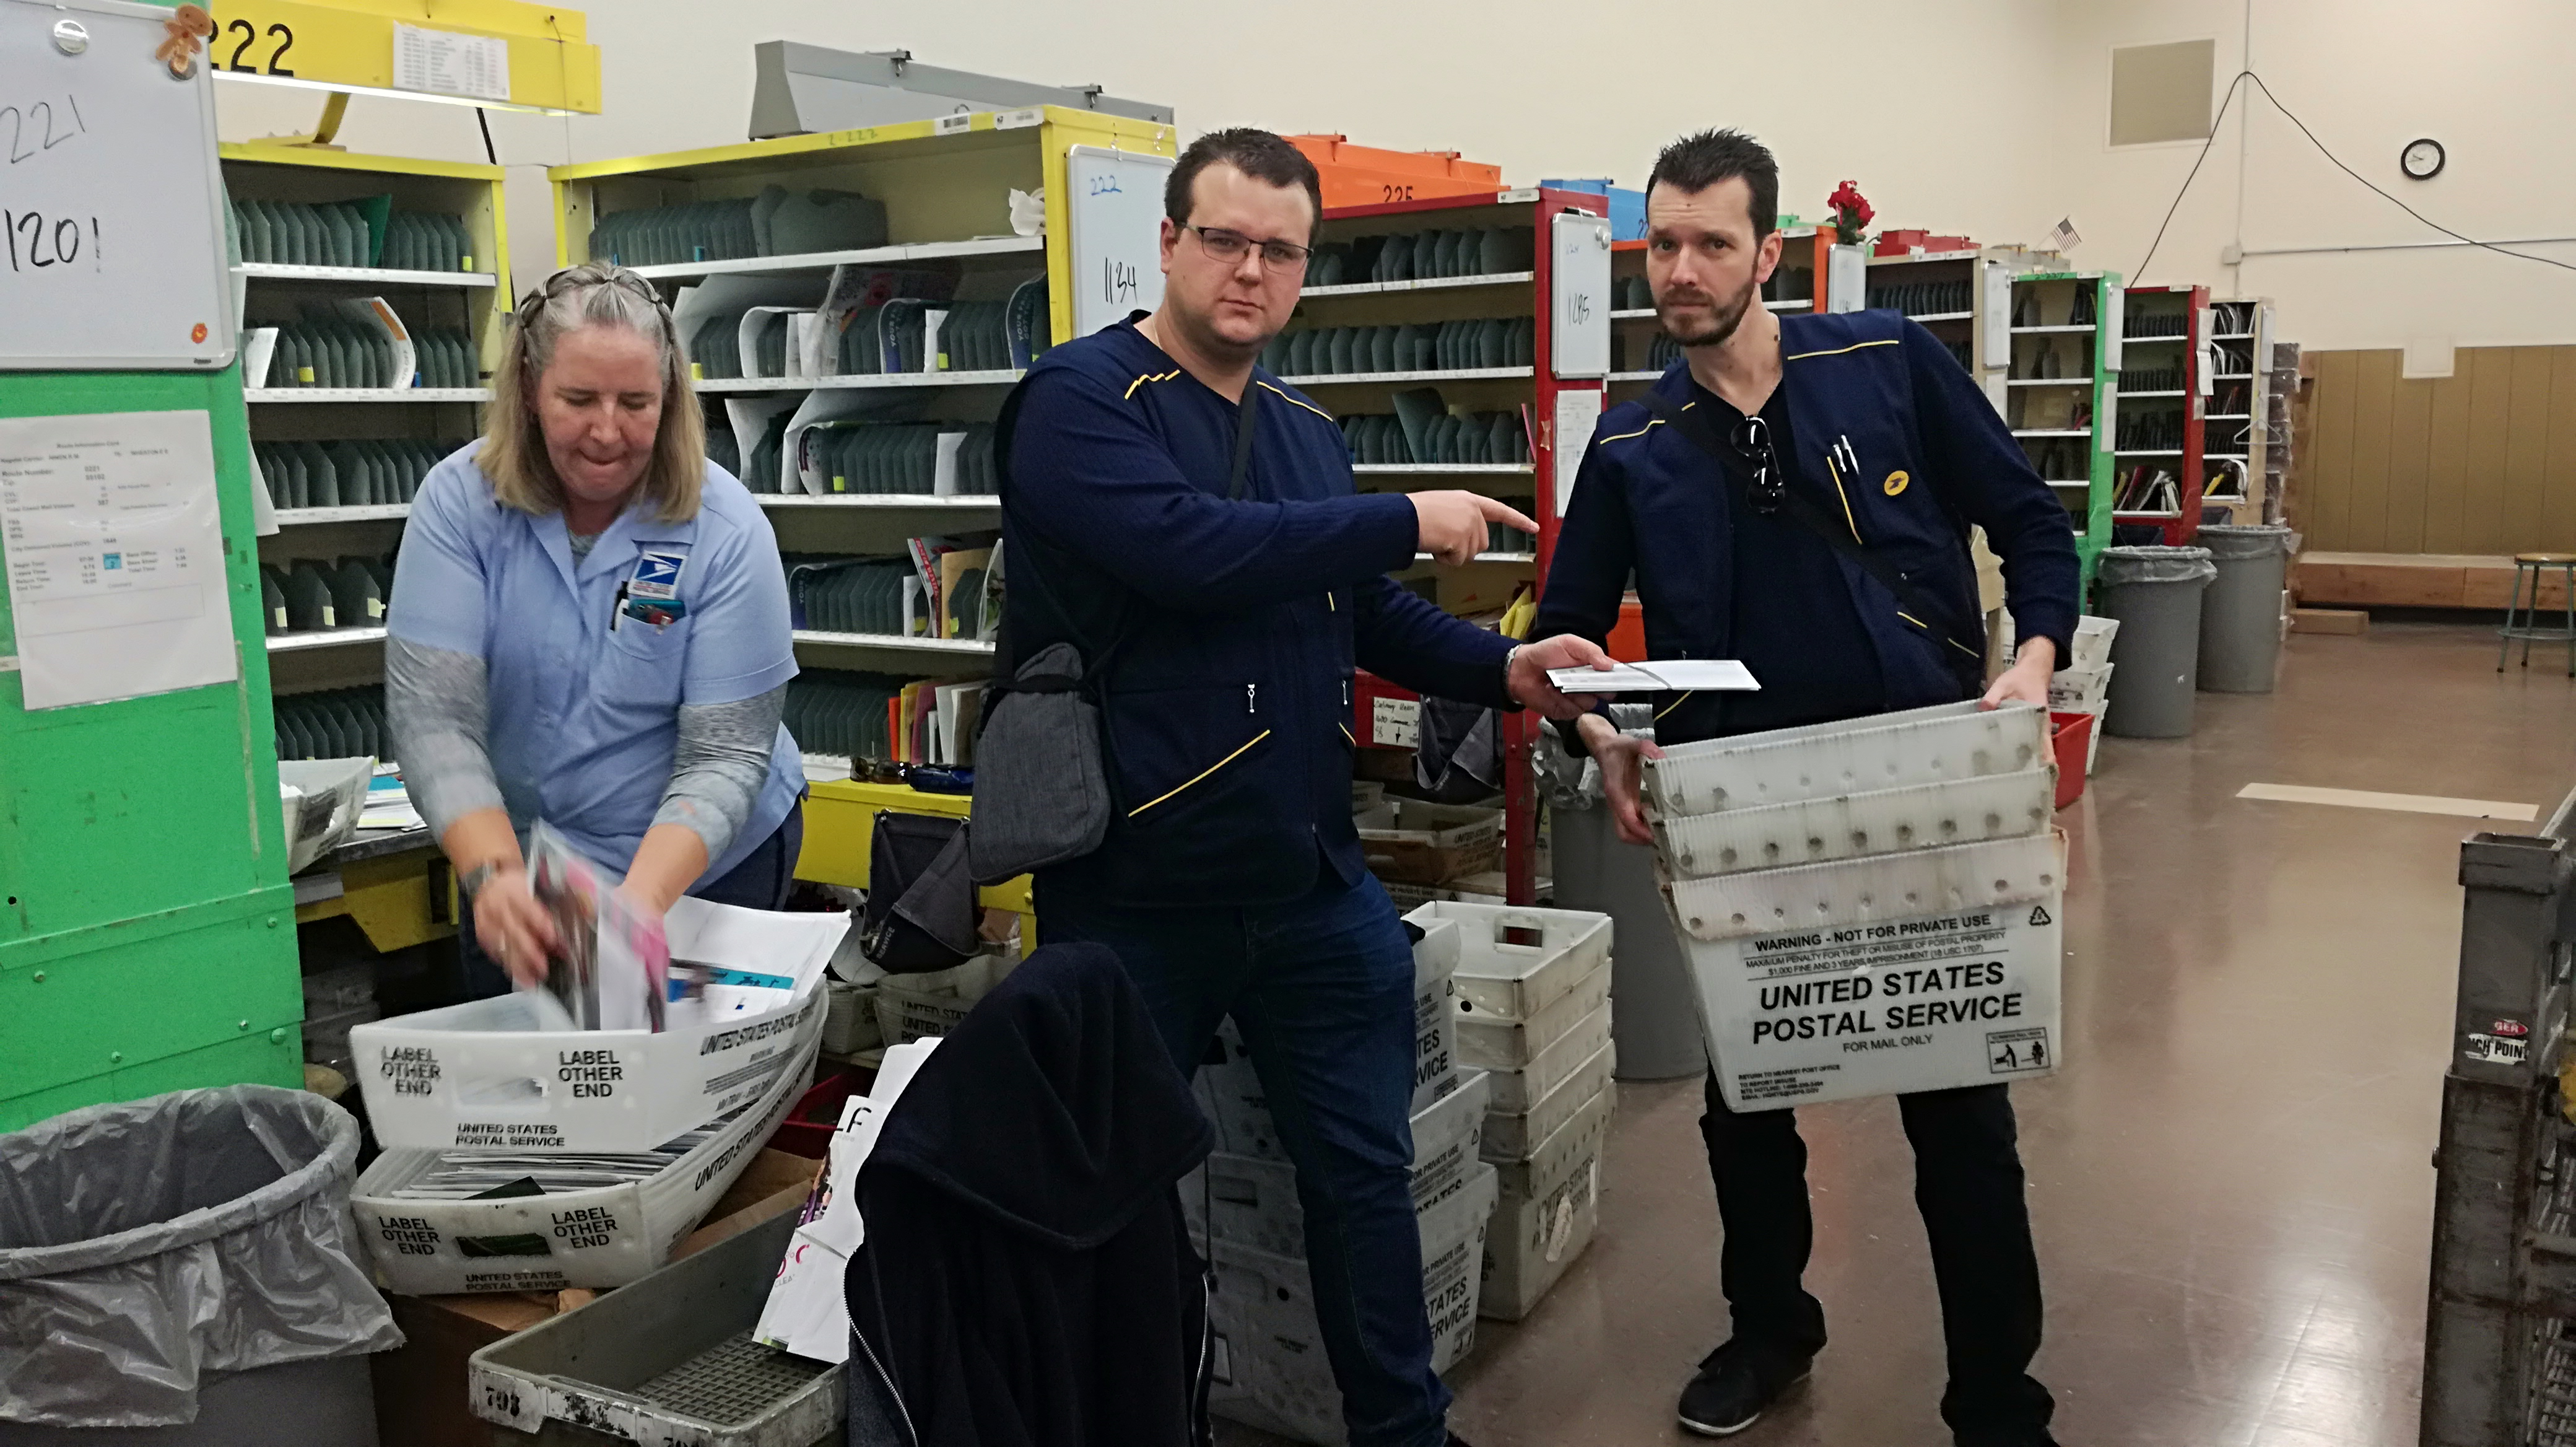 Patrice Labit and his colleagues spent half a day with American postal workers.